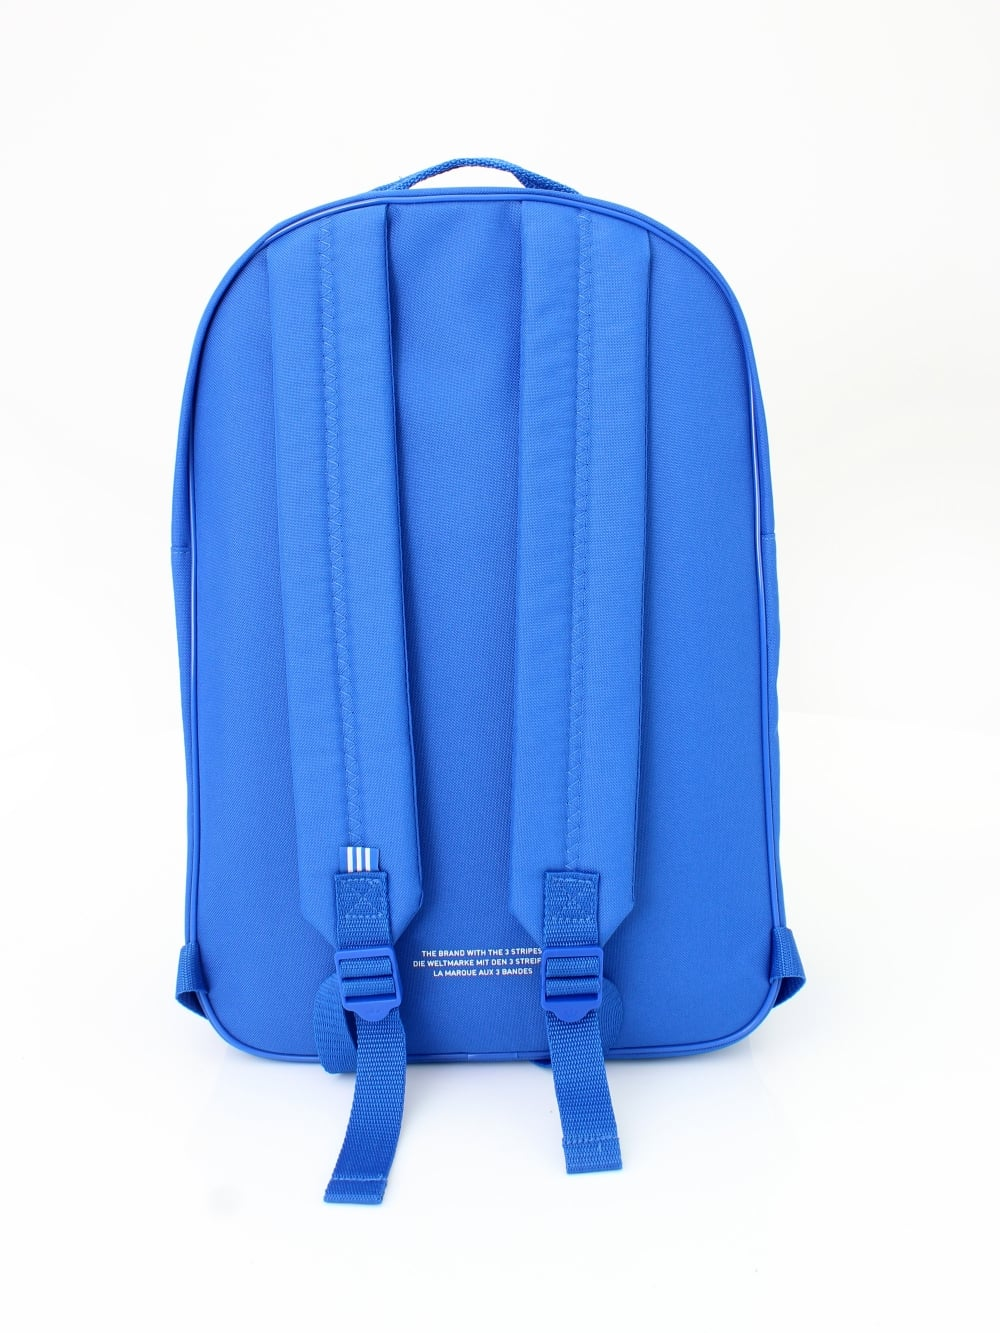 adidas Originals Trefoil Backpack in Blue   Northern Threads 913c9e3120